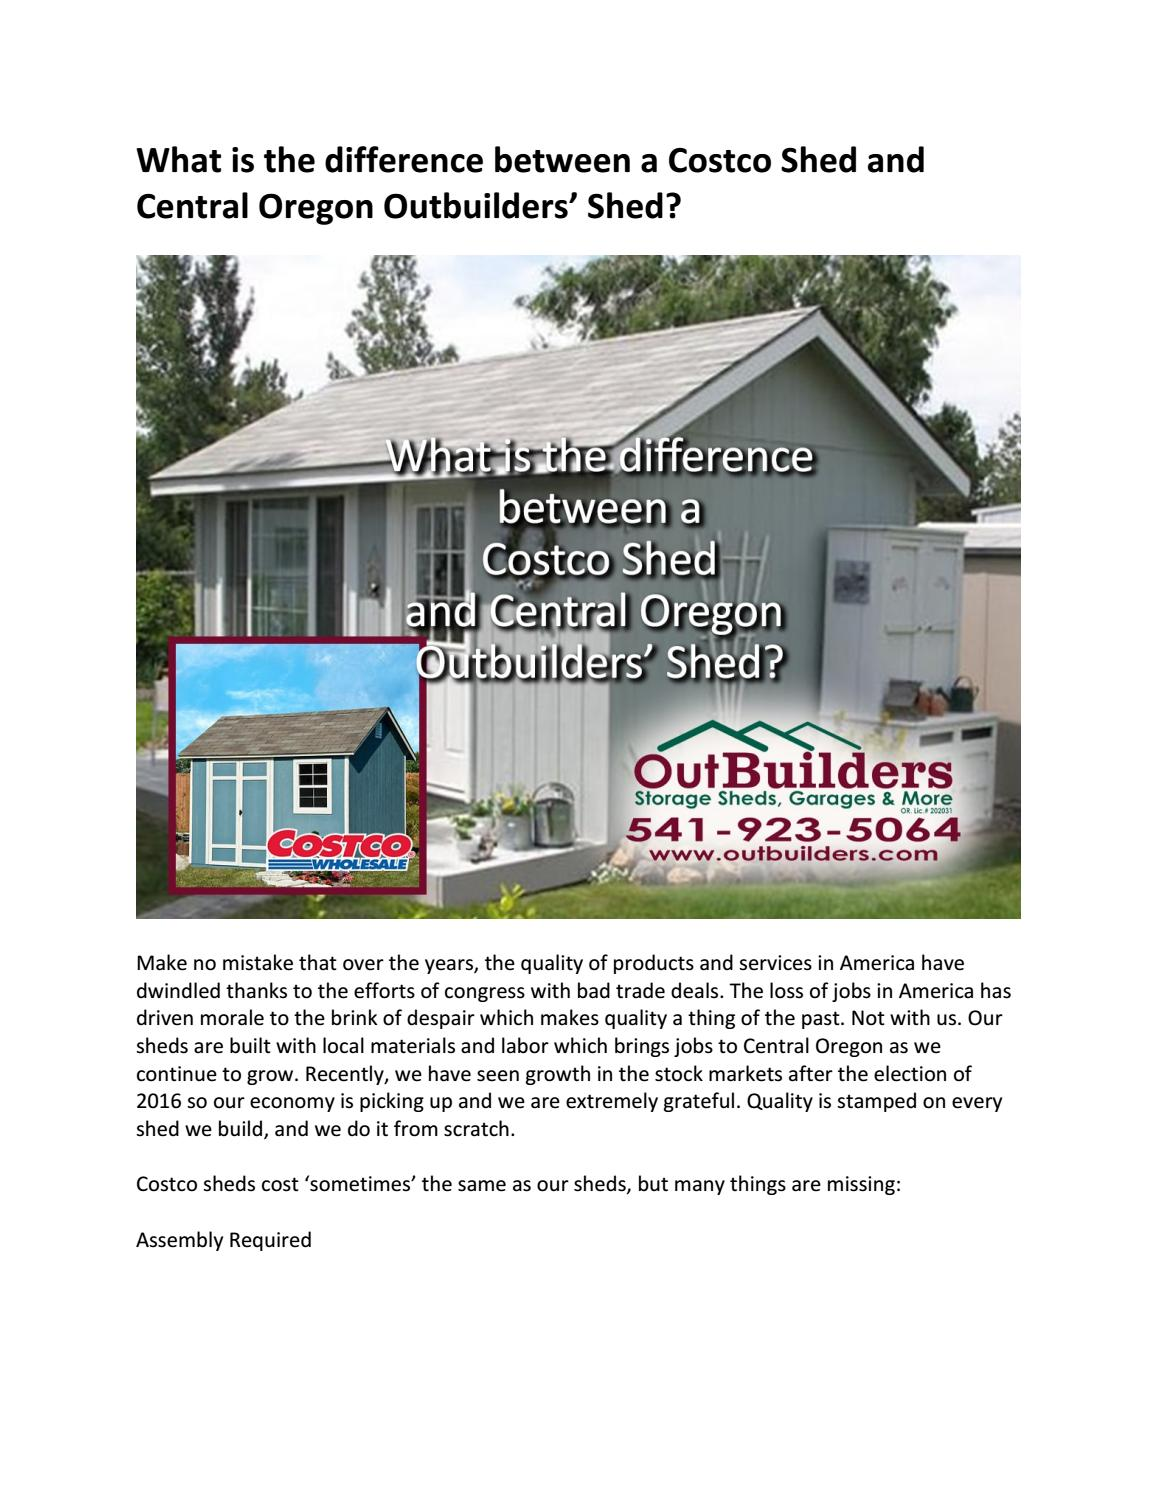 What Is The Difference Between A Costco Shed And Central Oregon Outbuilders By Issuu